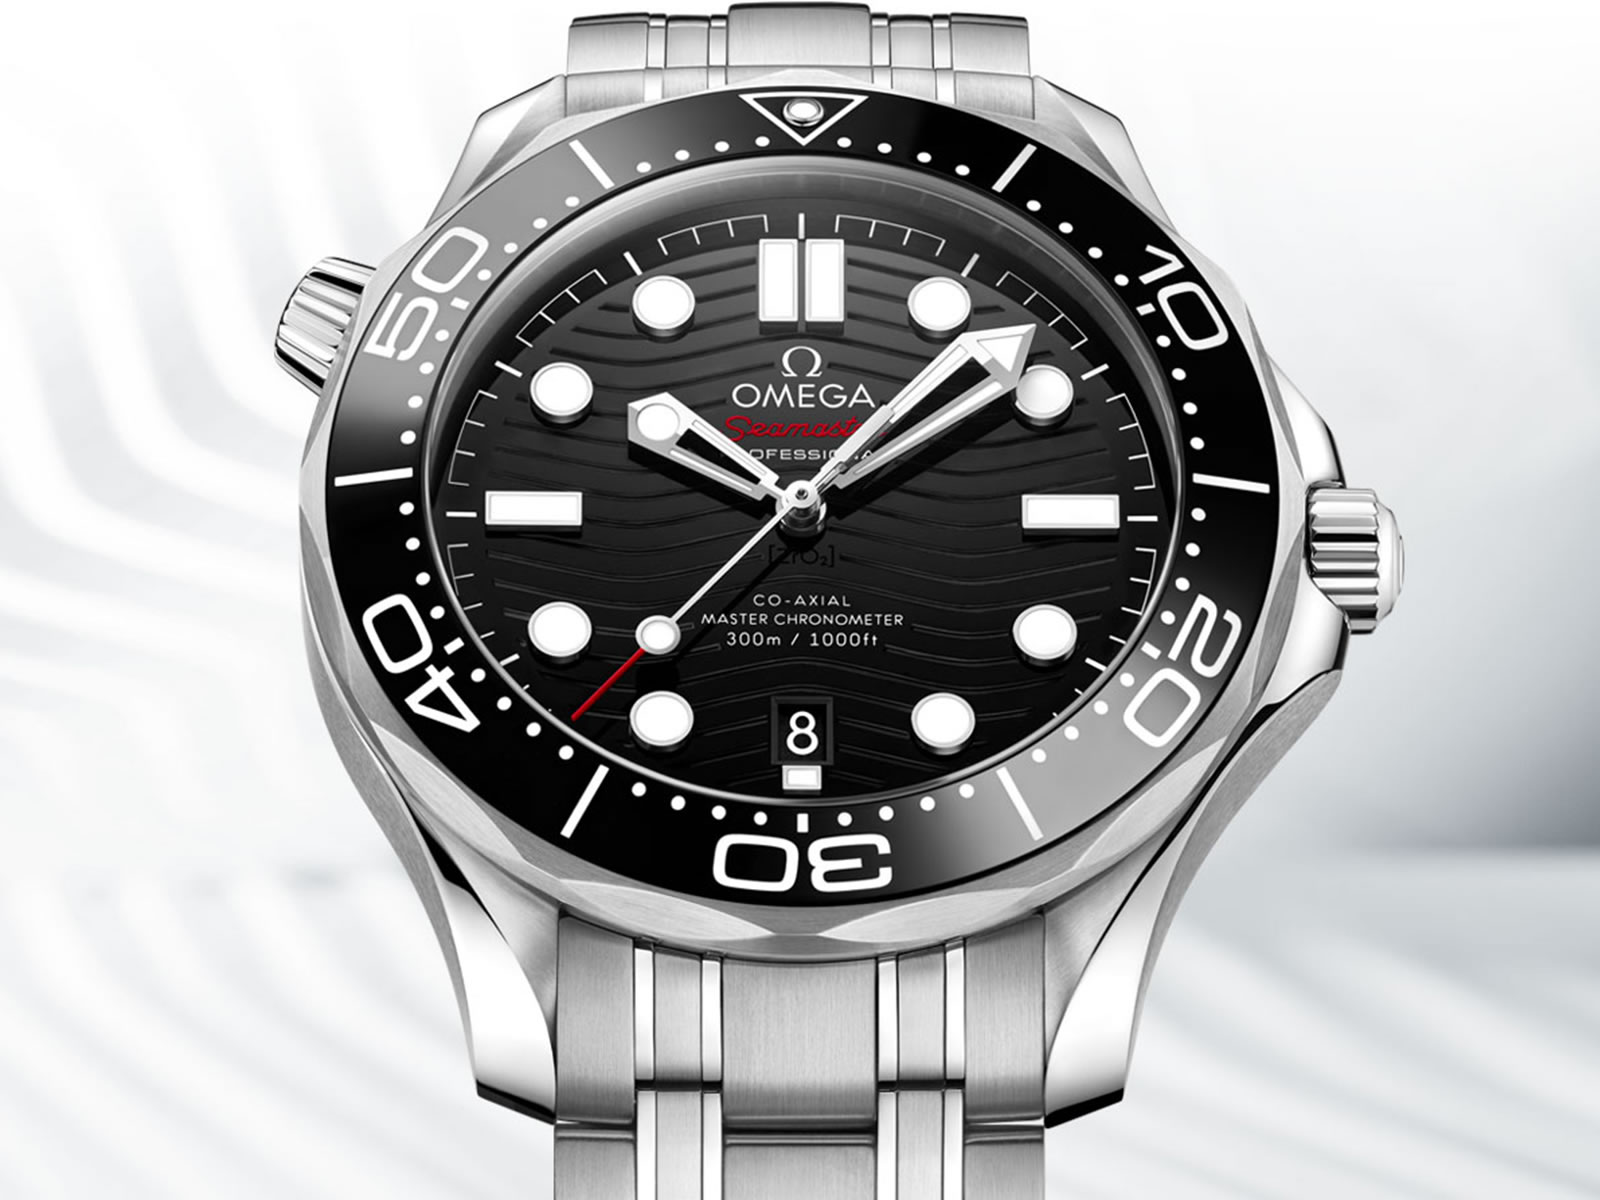 210-30-42-20-01-001-omega-seamaster-diver-300m-collection-2-.jgp